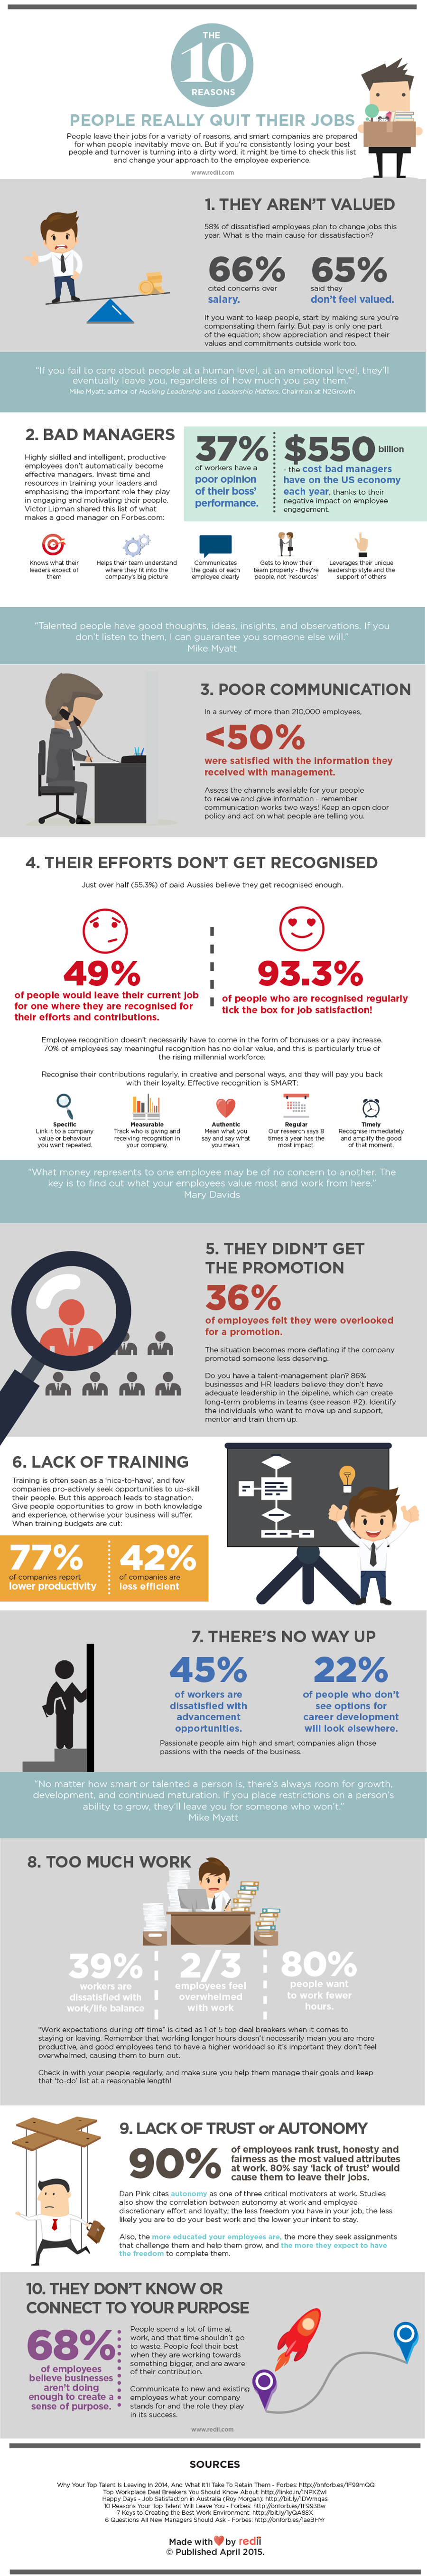 the reasons people really quit their jobs infographic redii infographic